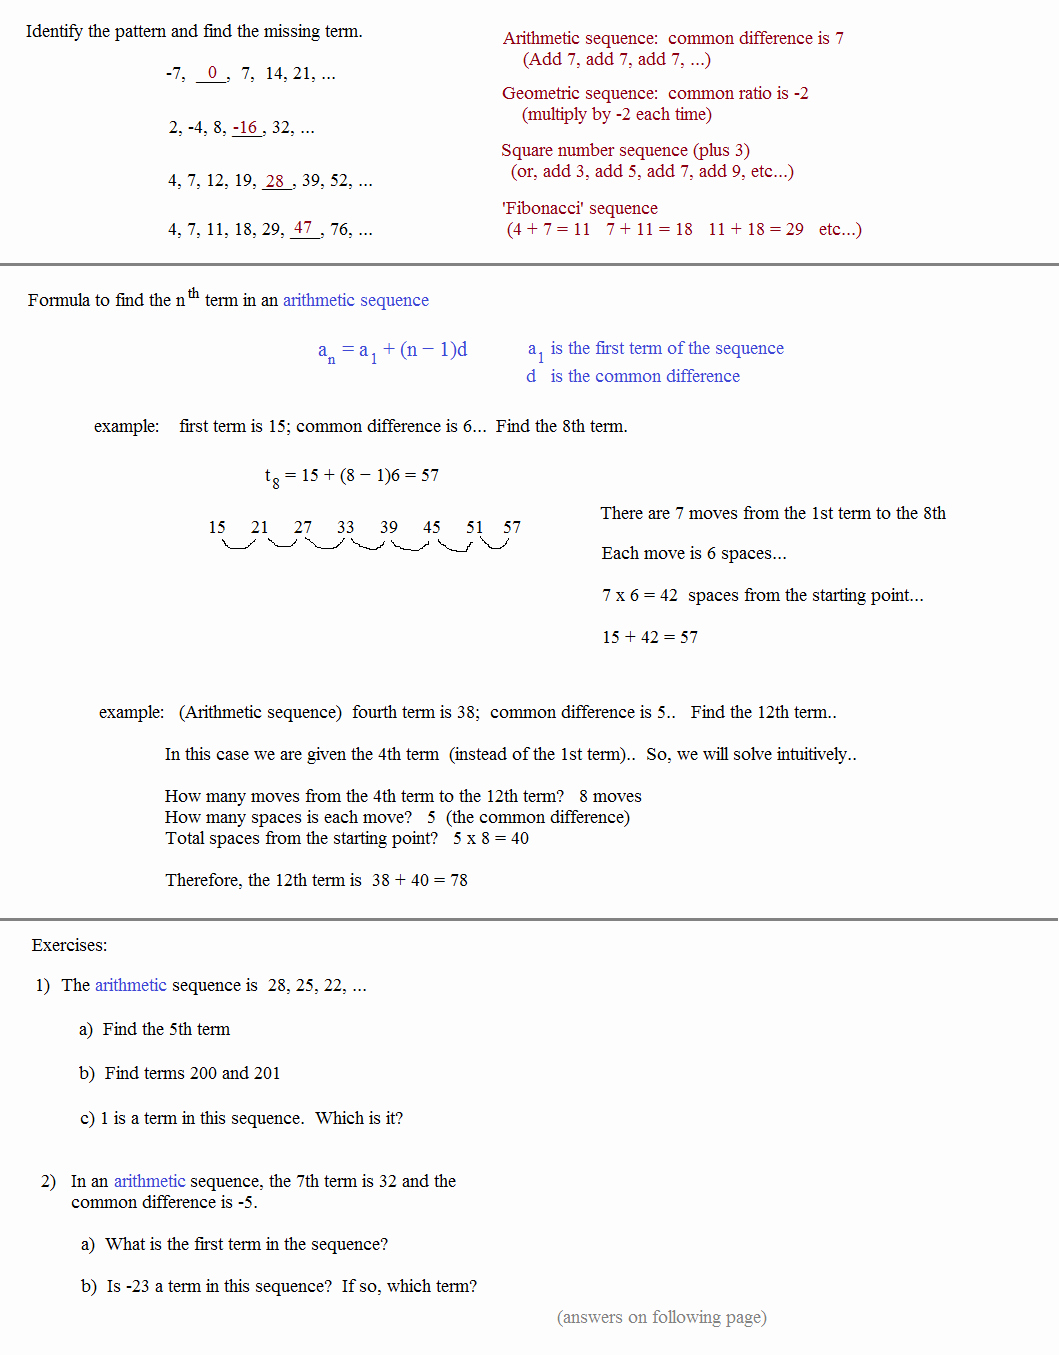 Geometric Sequence Worksheet Answers Elegant Math Plane Sequences and Series I